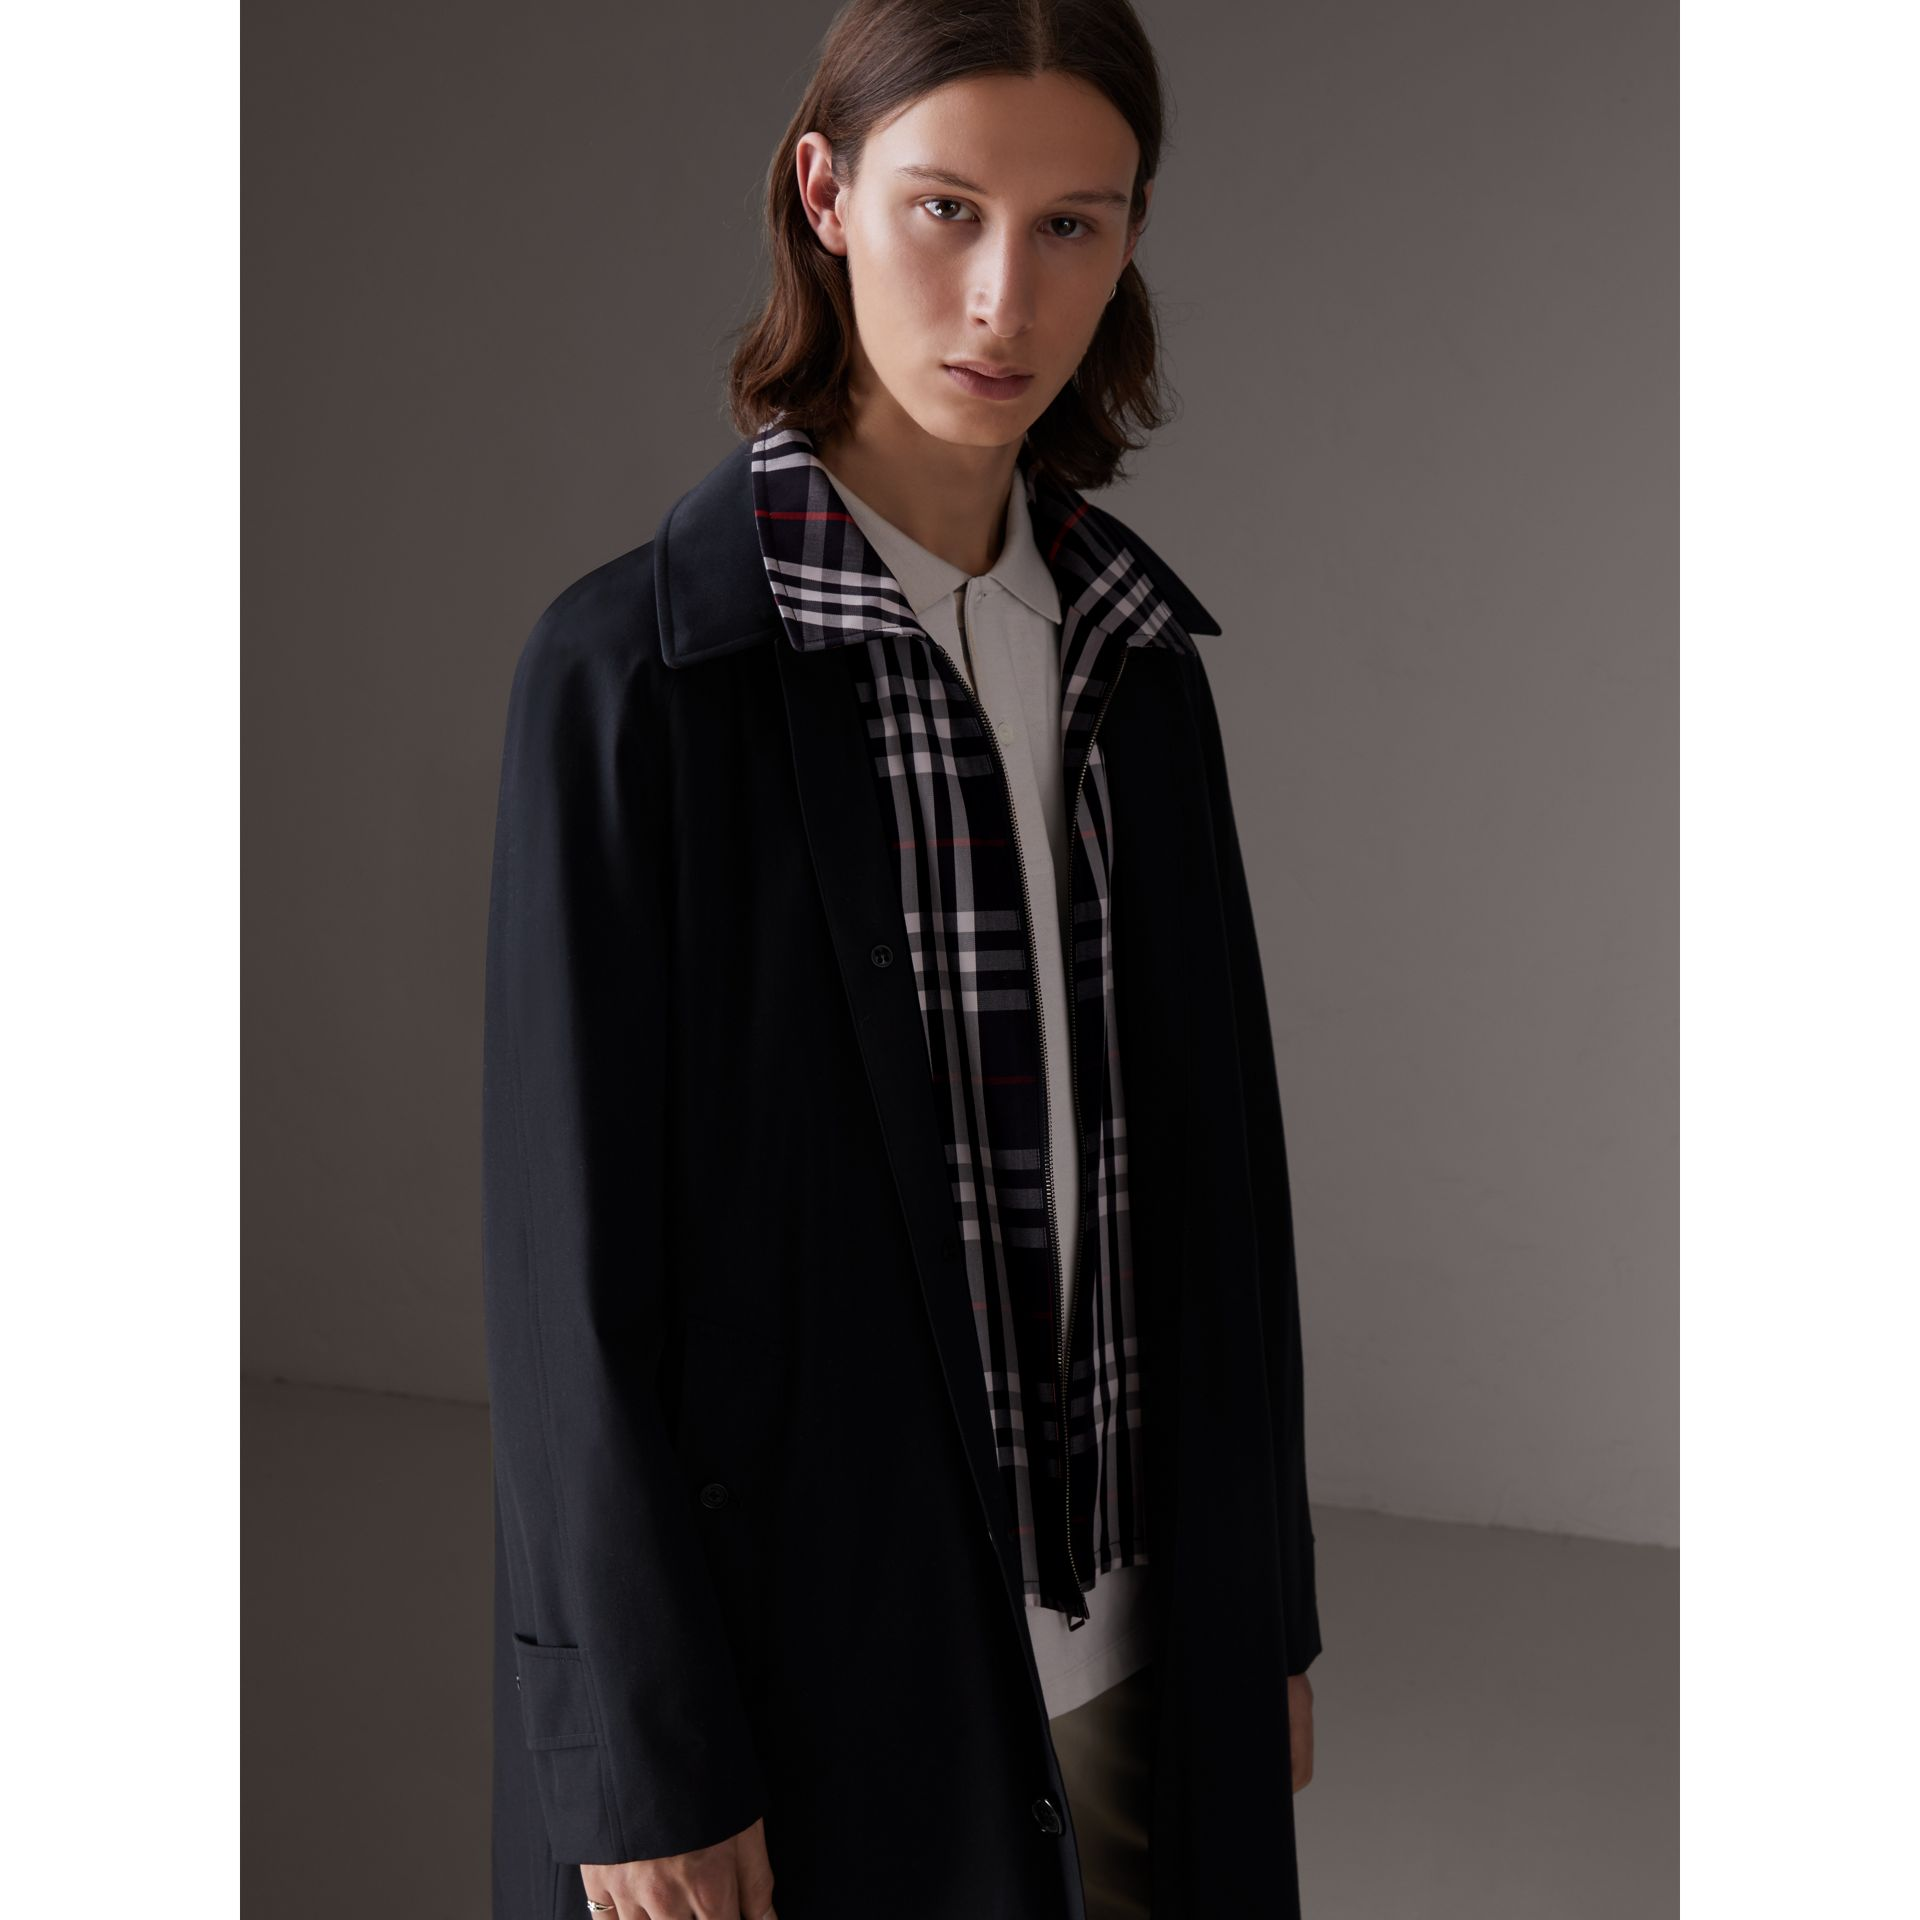 Gosha x Burberry Reconstructed Car Coat in Navy | Burberry - gallery image 2